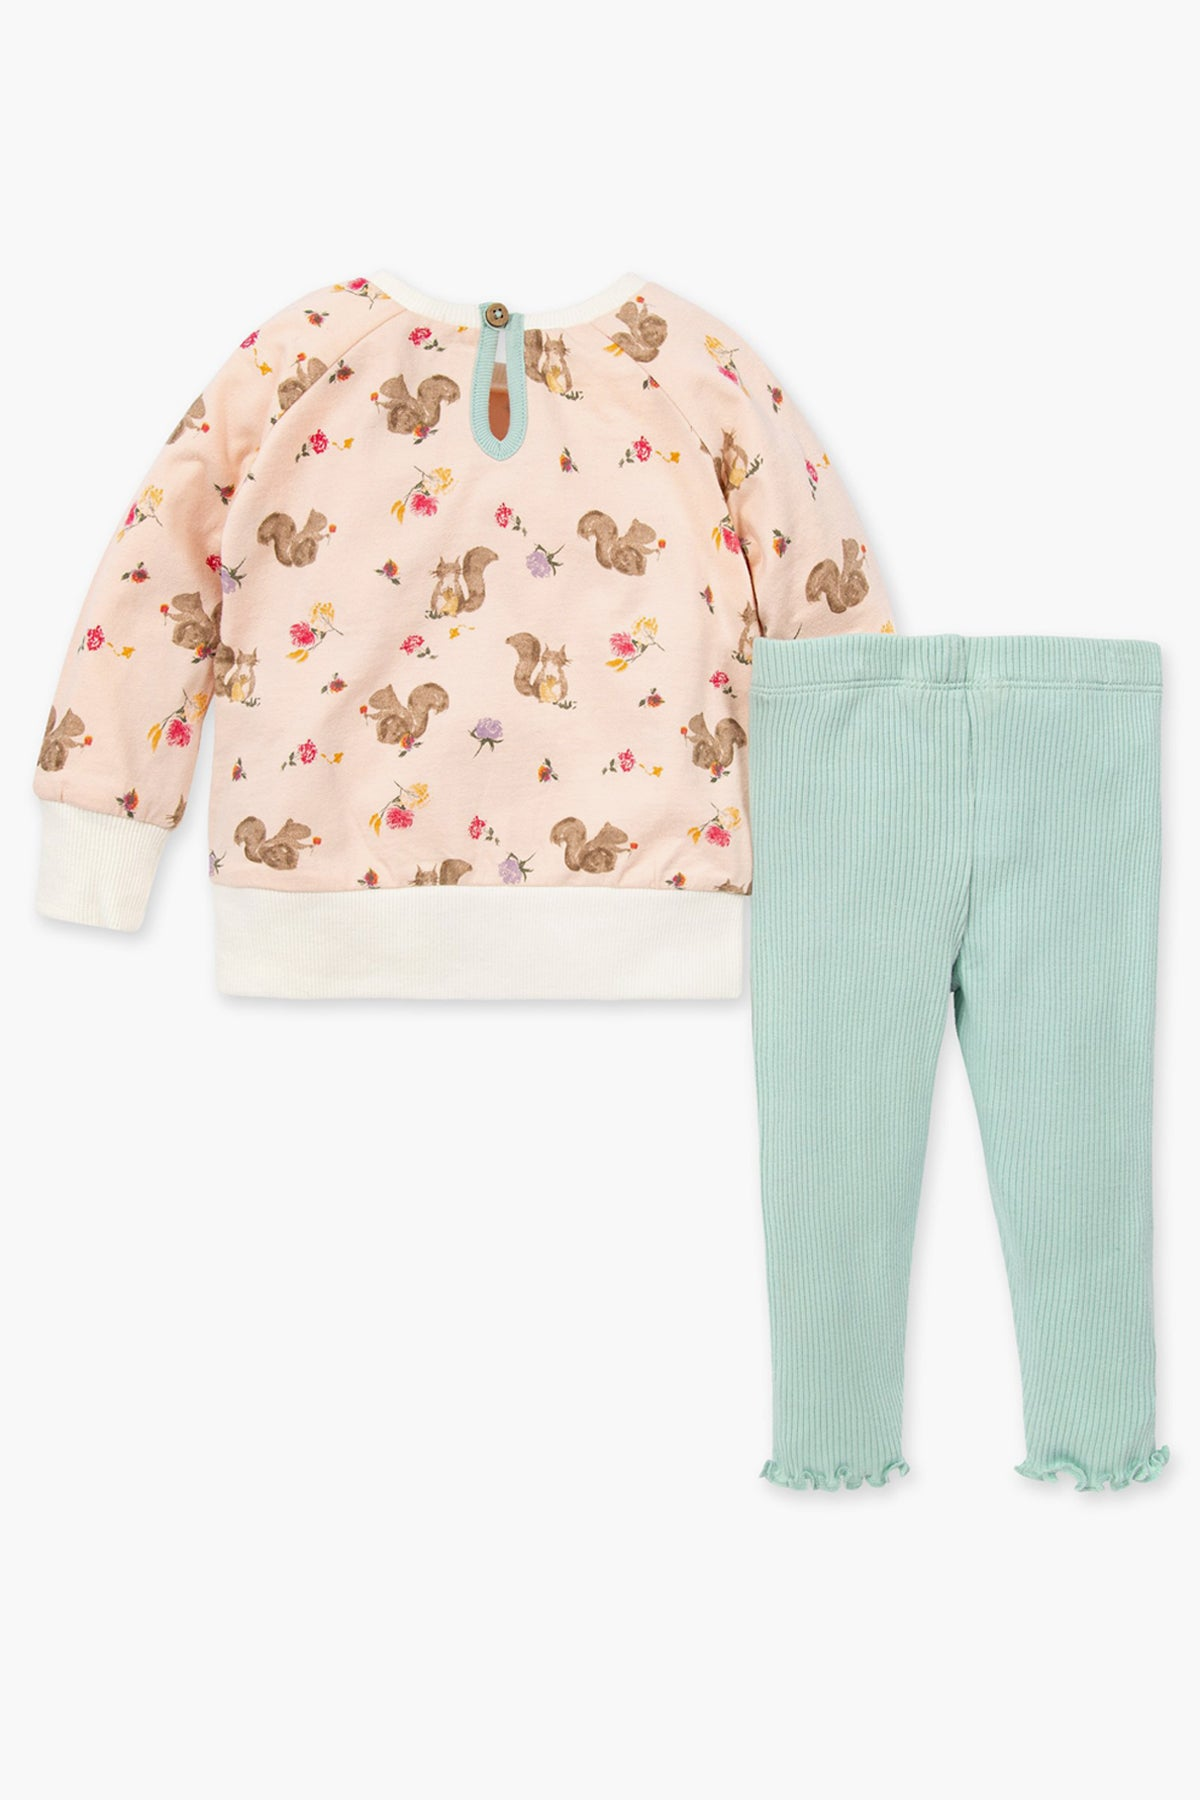 Burt's Bees Sharing Squirrels Tunic And Baby Legging Set